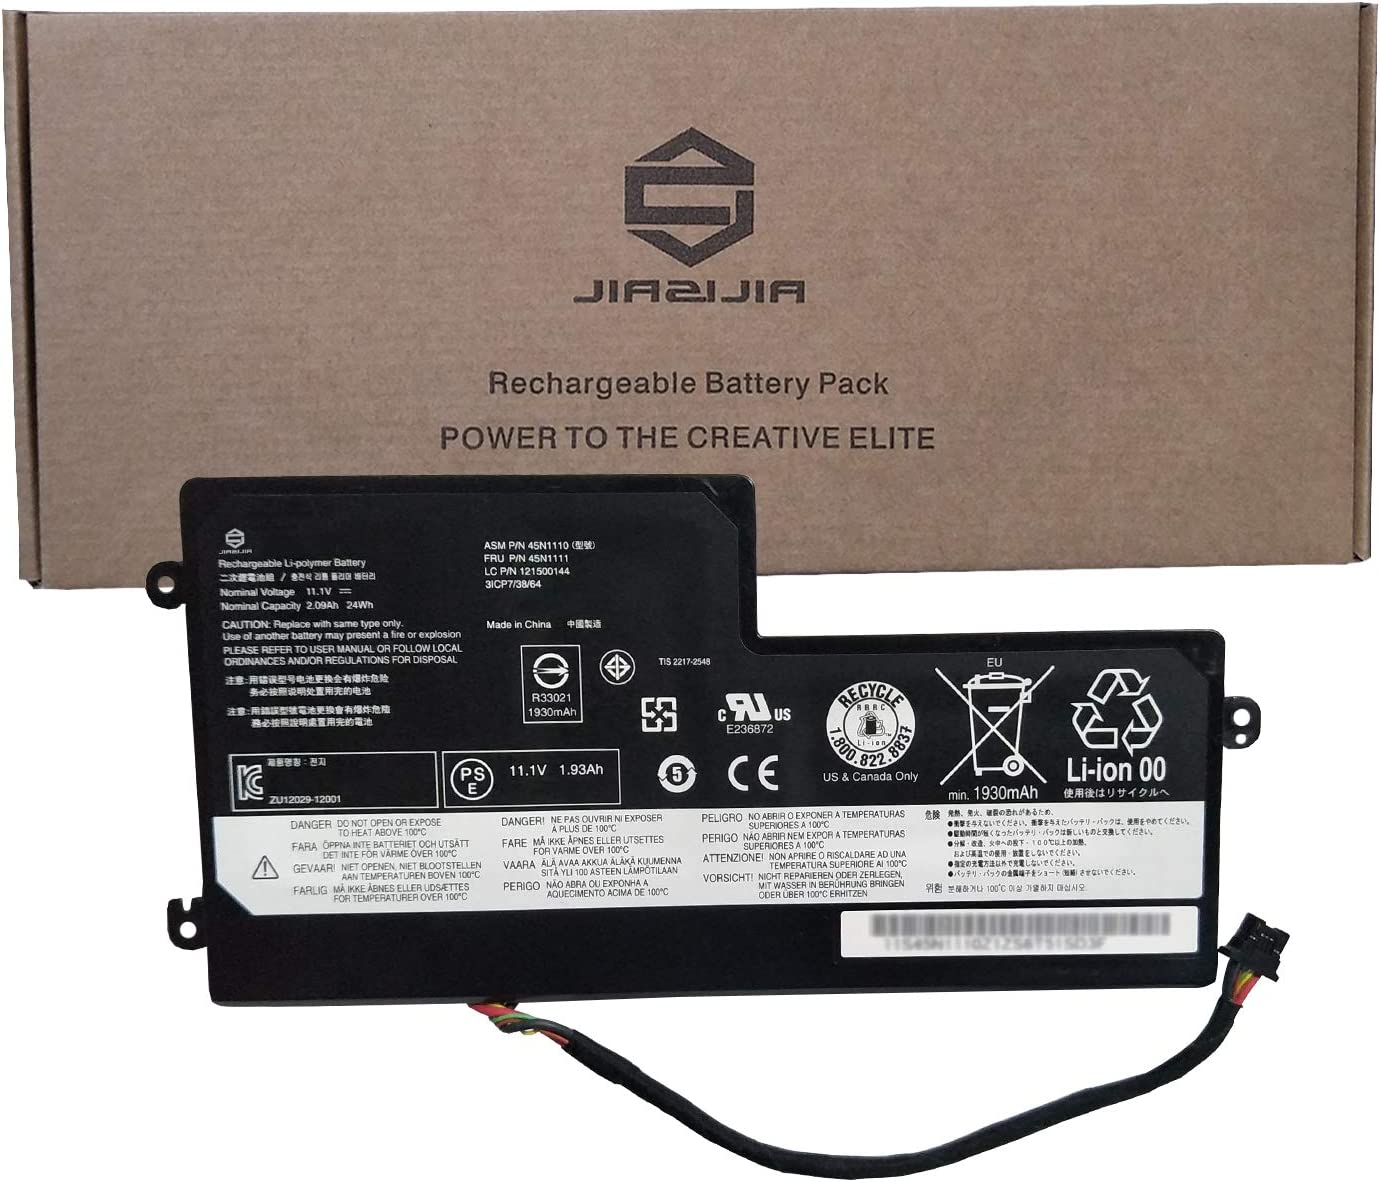 JIAZIJIA 45N1110 Laptop Battery Replacement for Lenovo ThinkPad T440 T450 T450S T460 X240 X240S X250 A275 Series Internal 45N1111 45N1112 45N1113 01AV459 45N1109 45N1108 45N1773 11.1V 24Wh 2090mAh